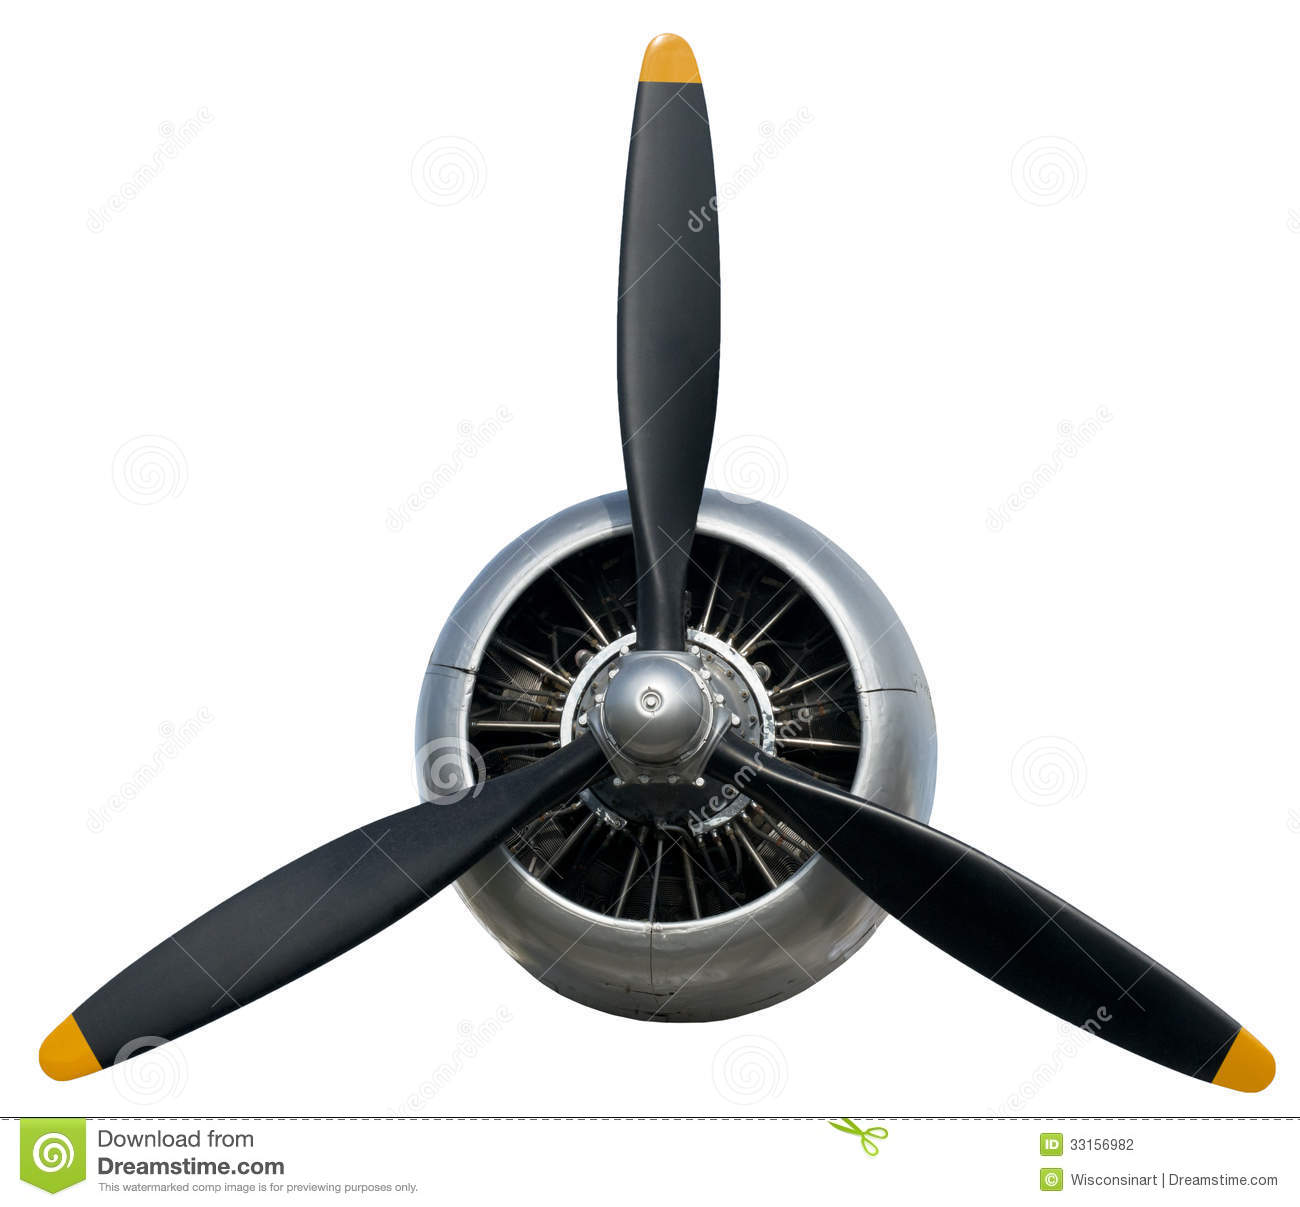 Airplane Propeller Clipart Prop - Airplane Prop PNG